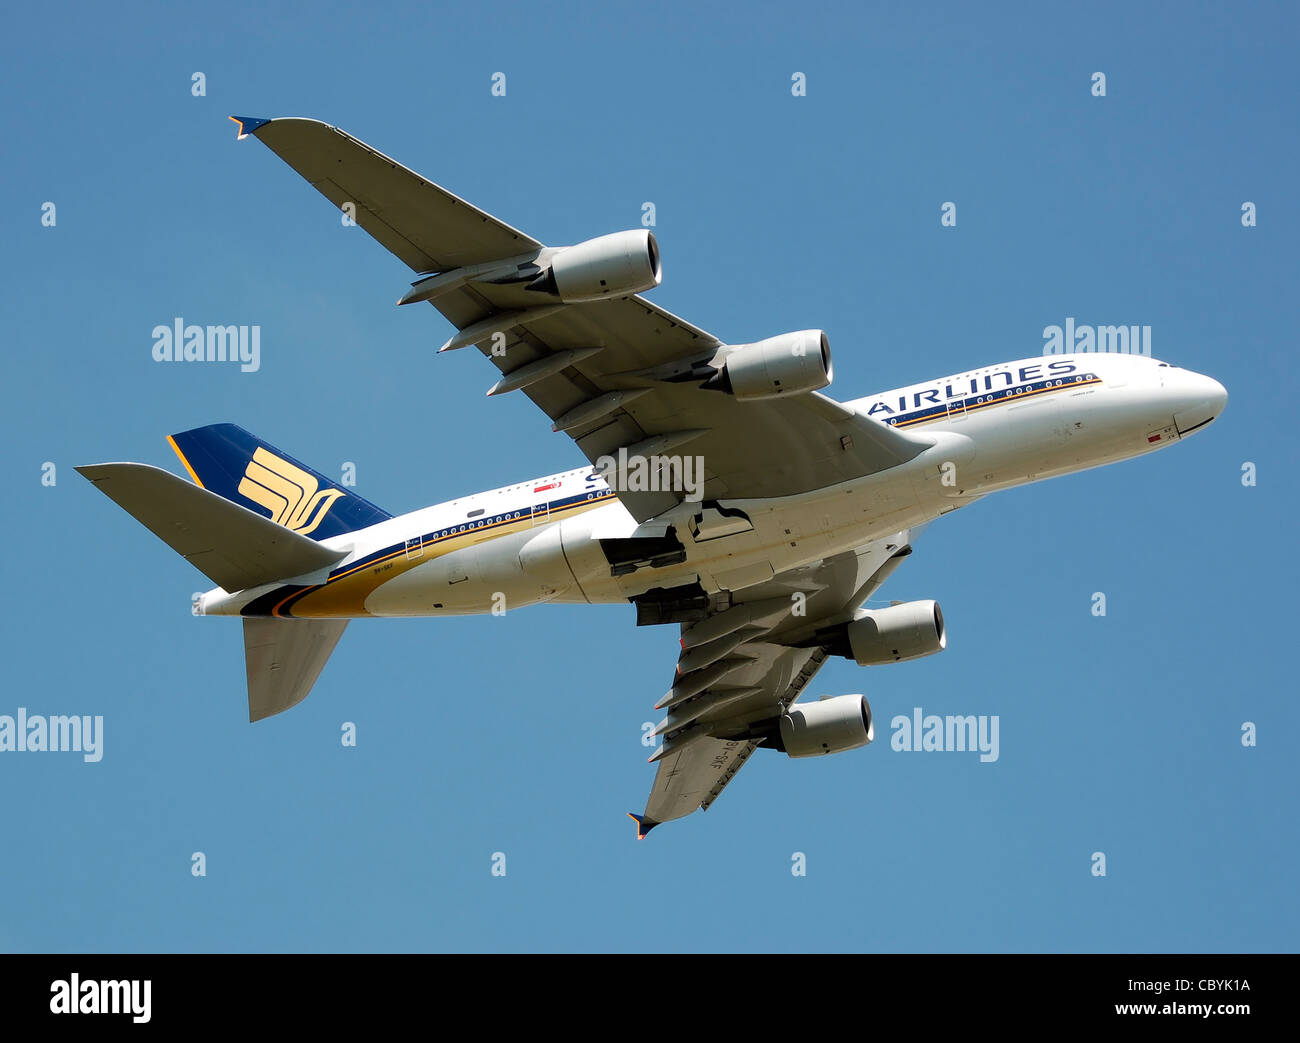 Singapore Airlines Airbus A380 (9V-SKF) takes off from London Heathrow Airport, England. - Stock Image